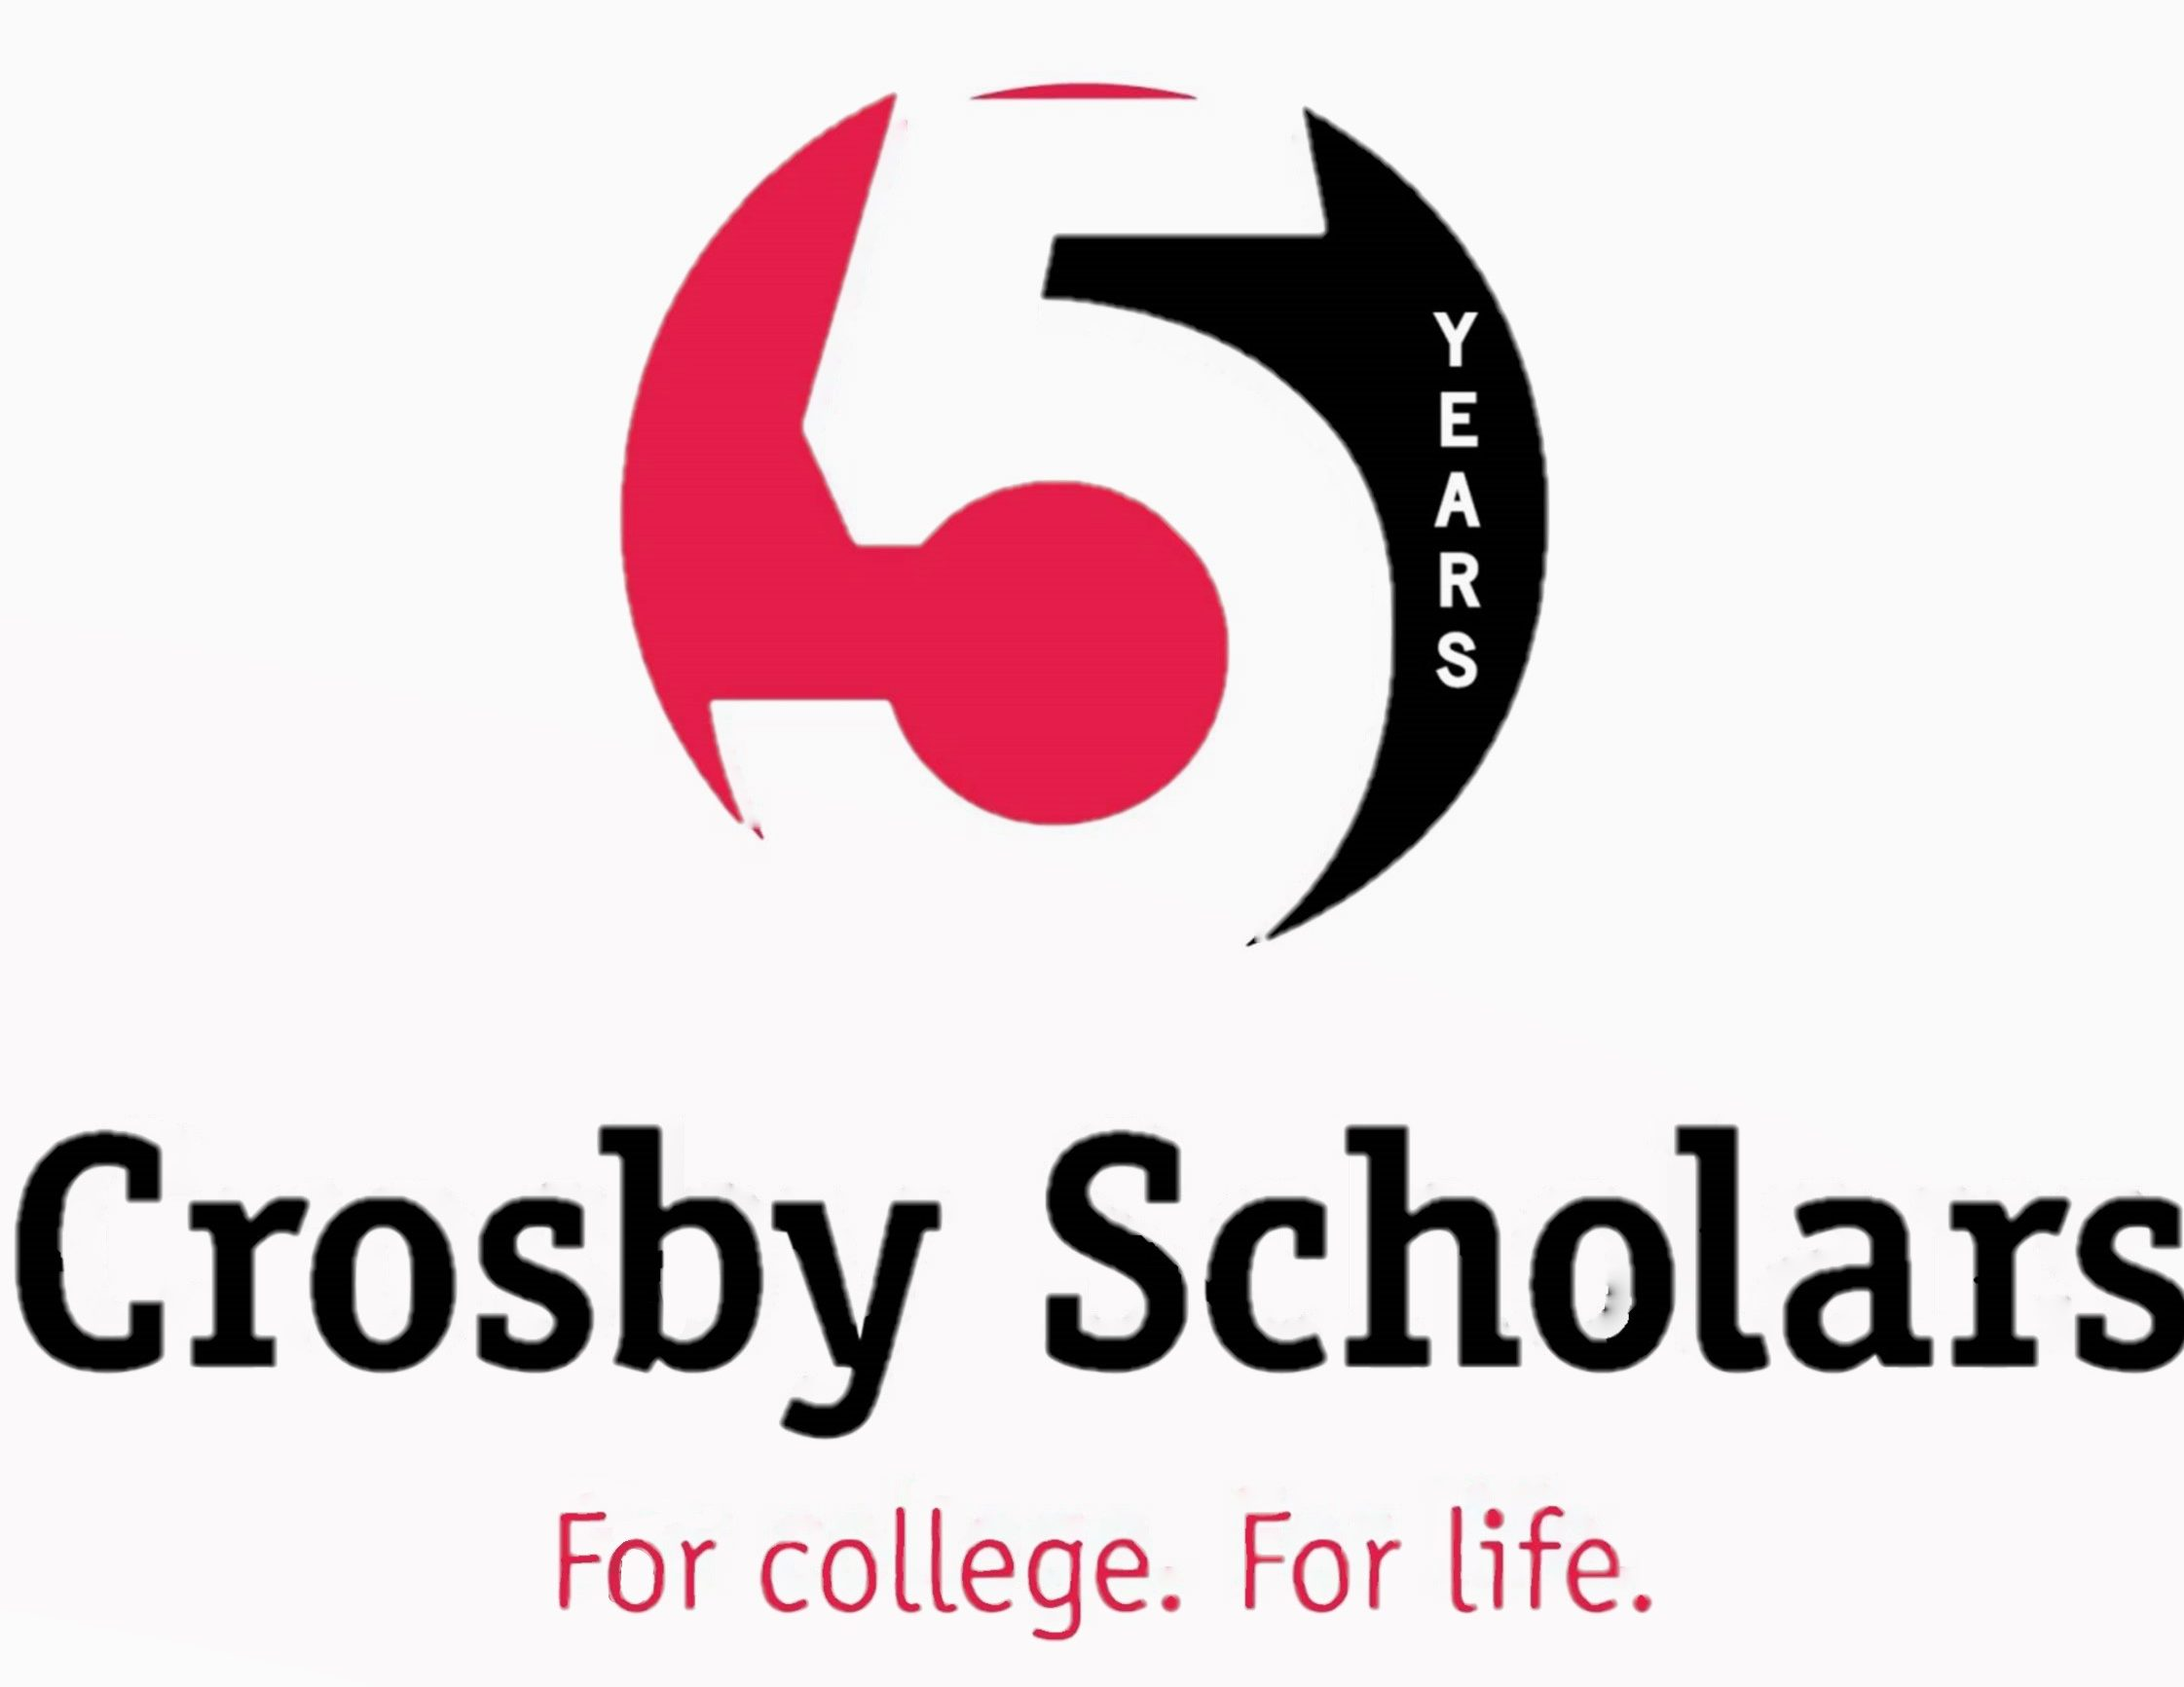 Crosby Scholars. For college. For life.